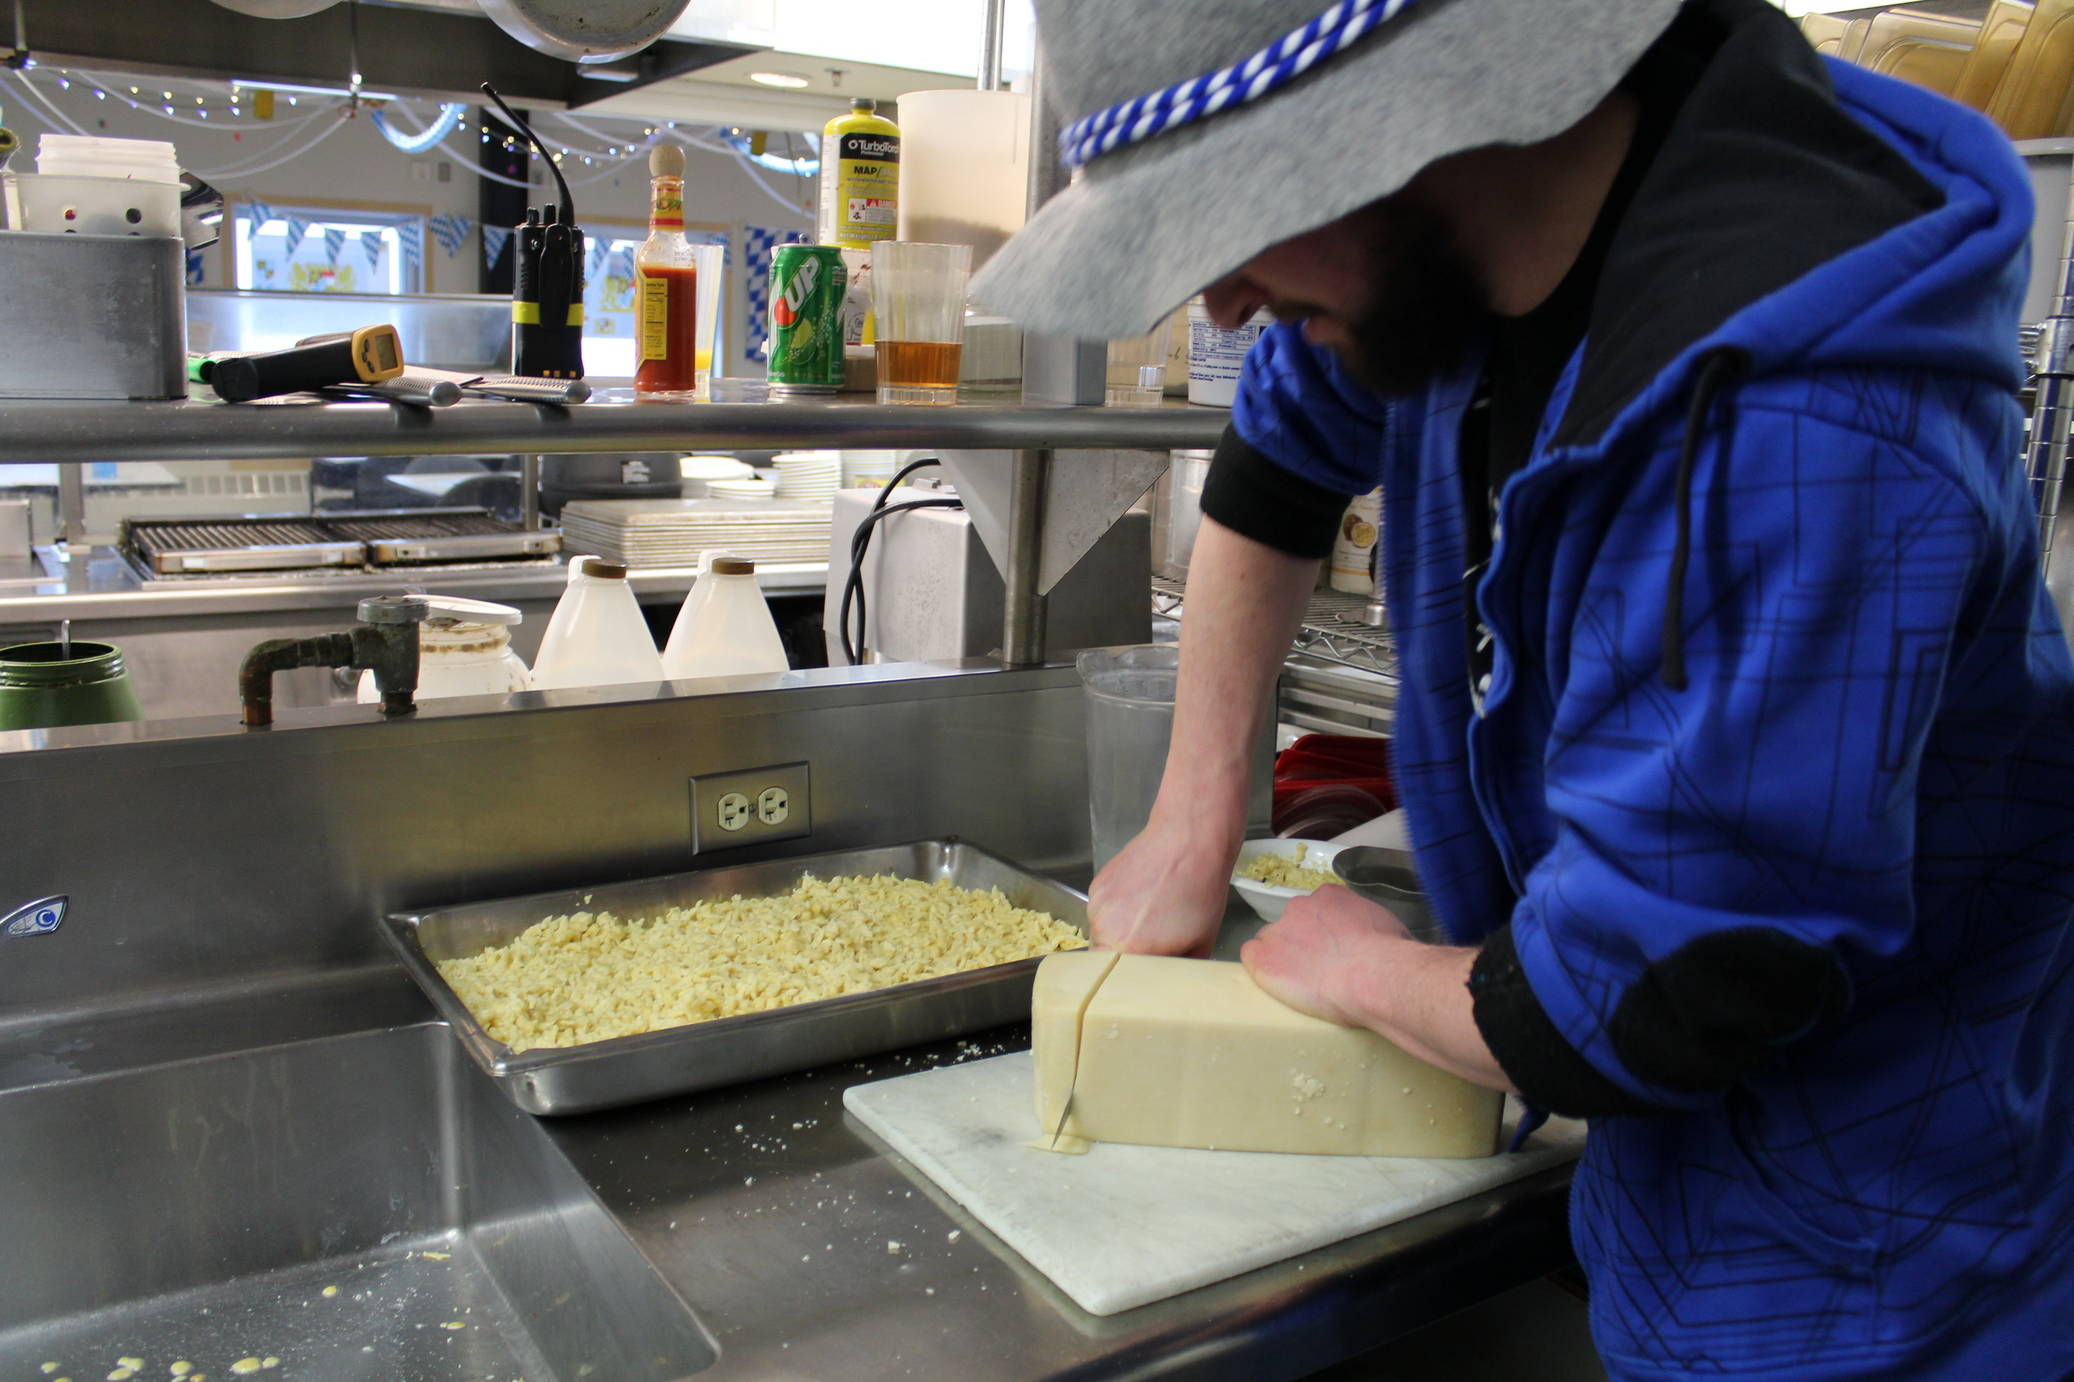 Behind the scenes - Käsespätzle with extra cheese (Photo: Stephanie Olcott)